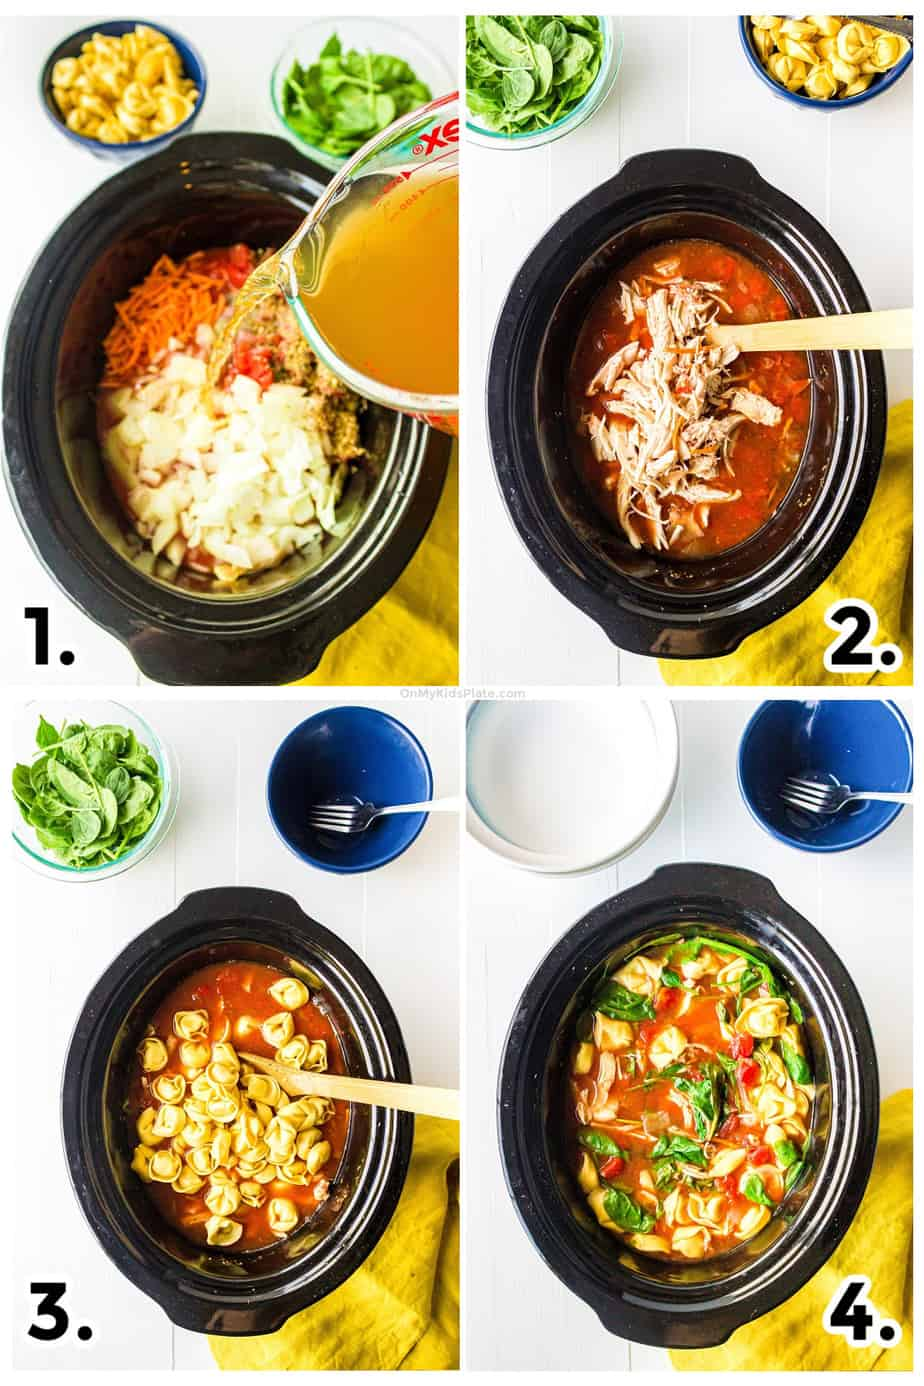 Step by step images adding broth, shredding chicken and adding tortellini and spinach to the crock pot at the right times